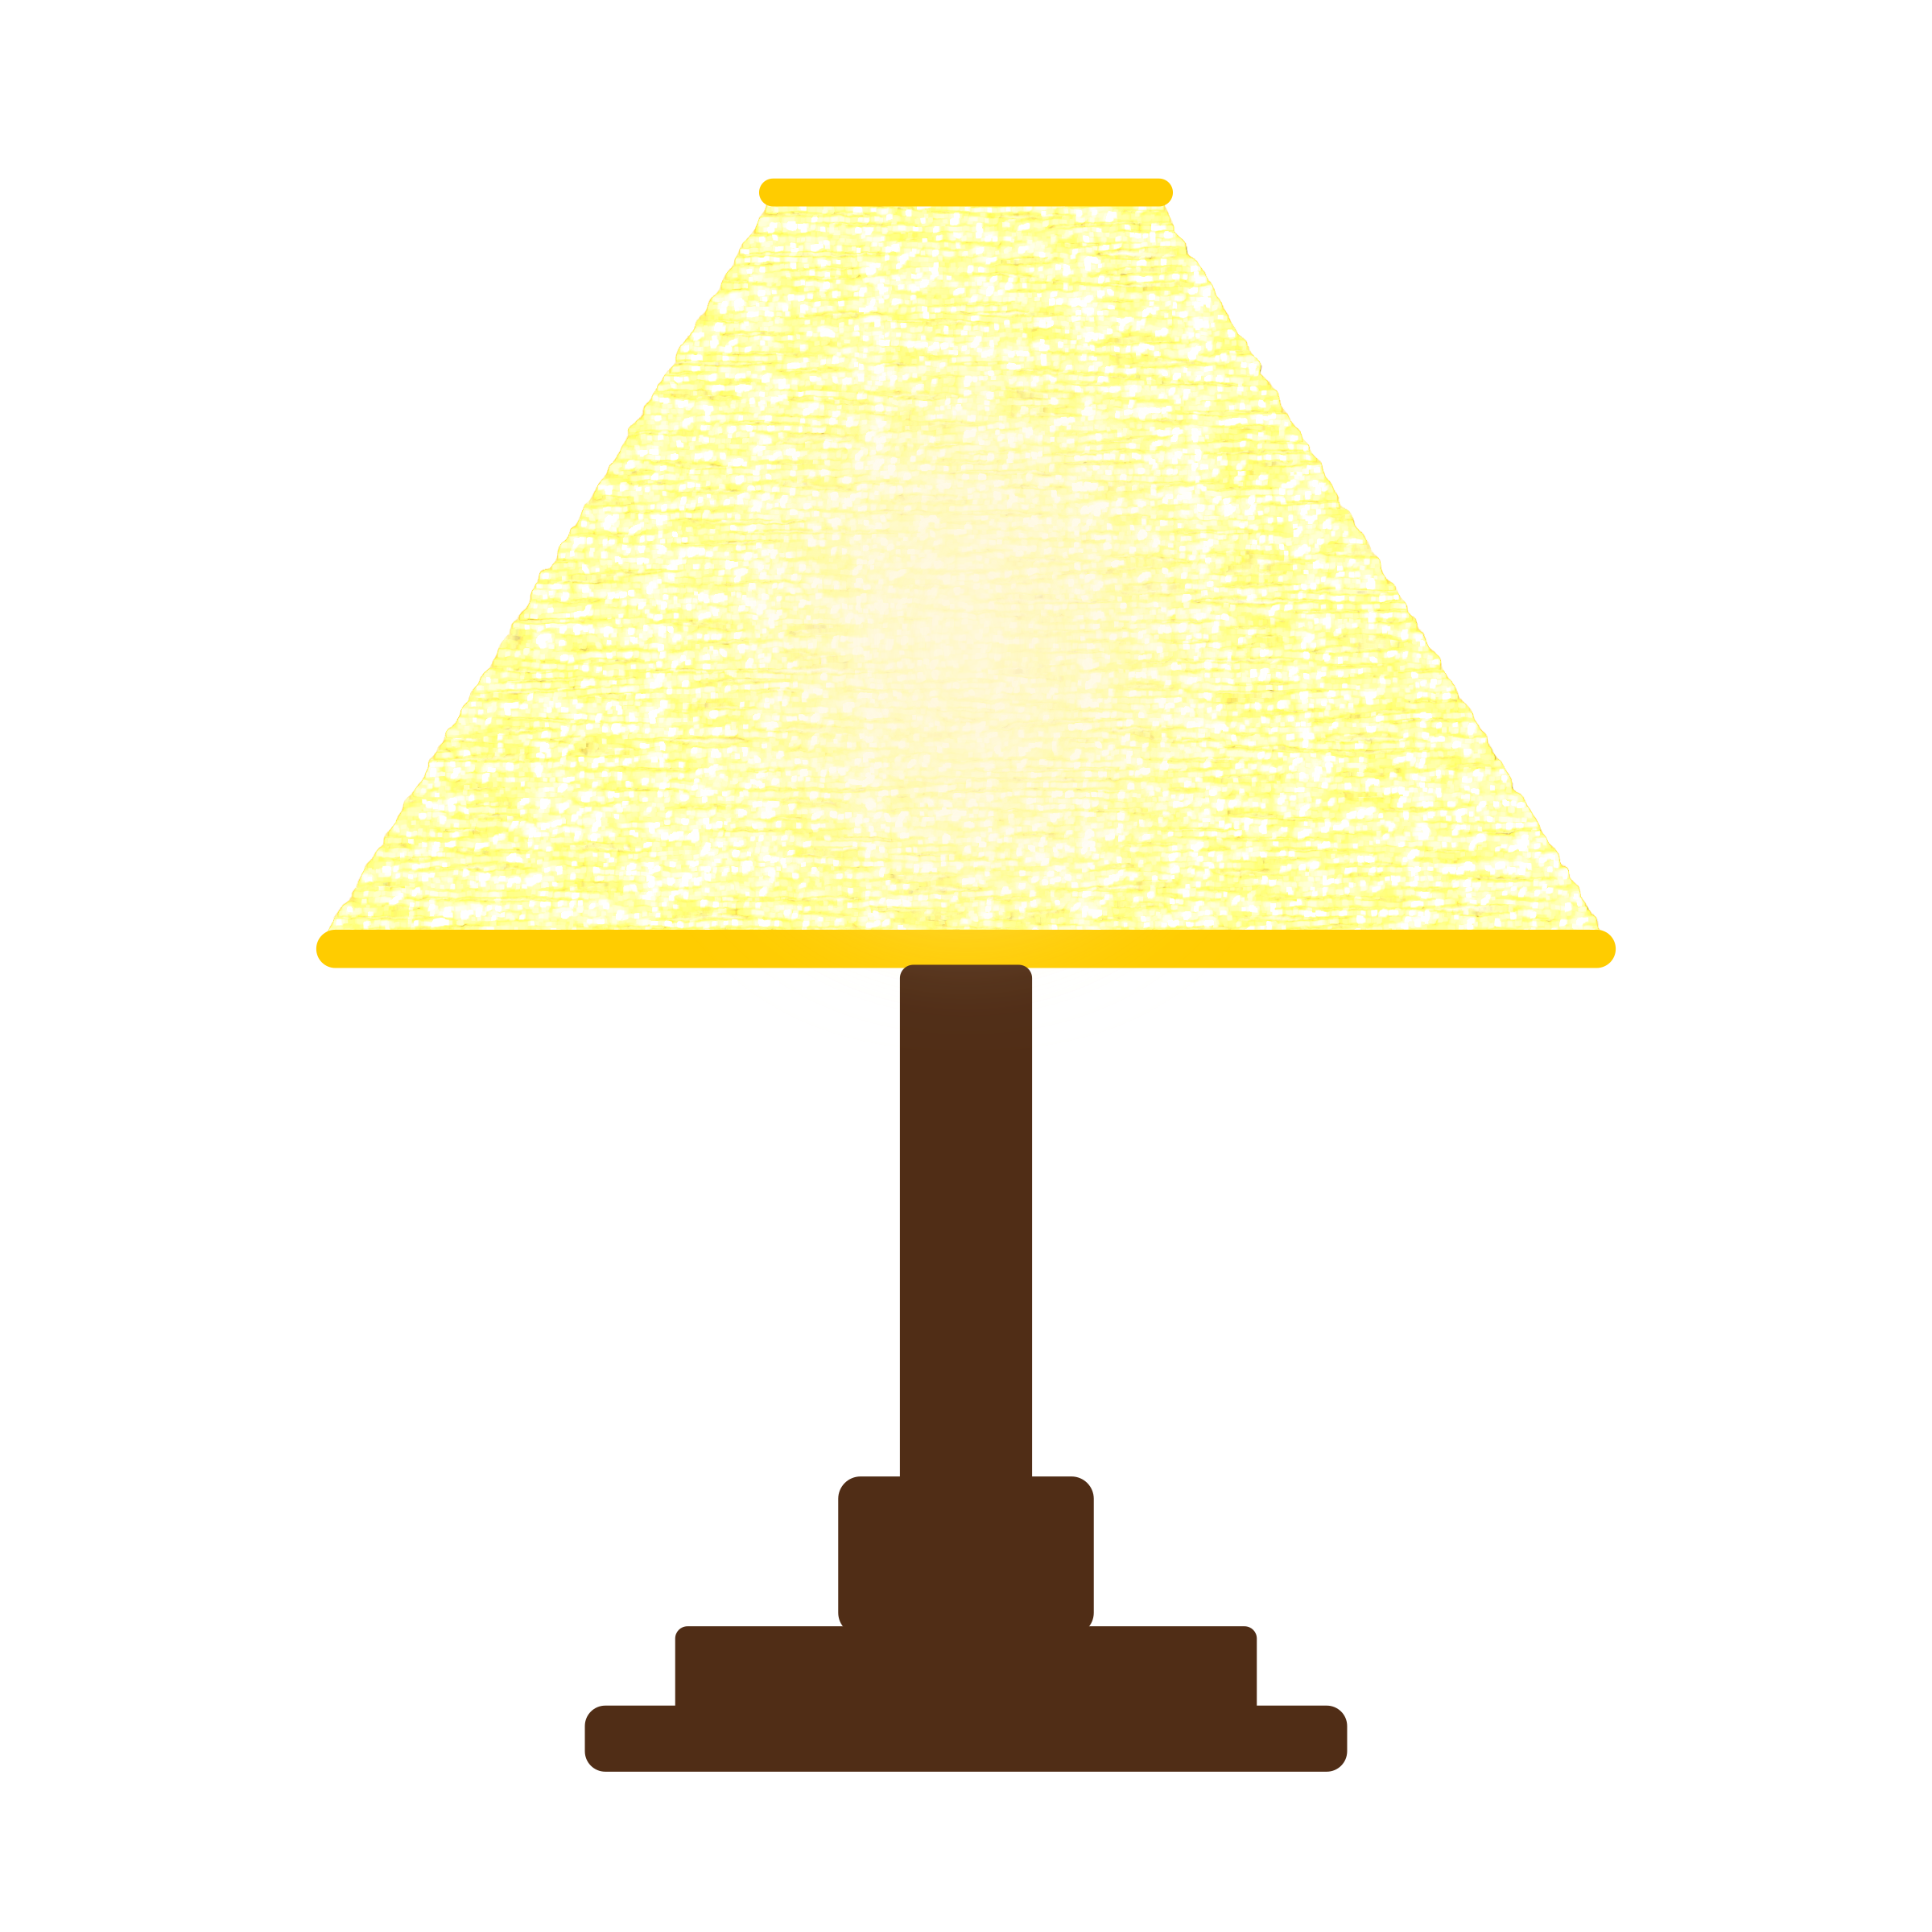 Color clipart yellow. Lamp shade simple three